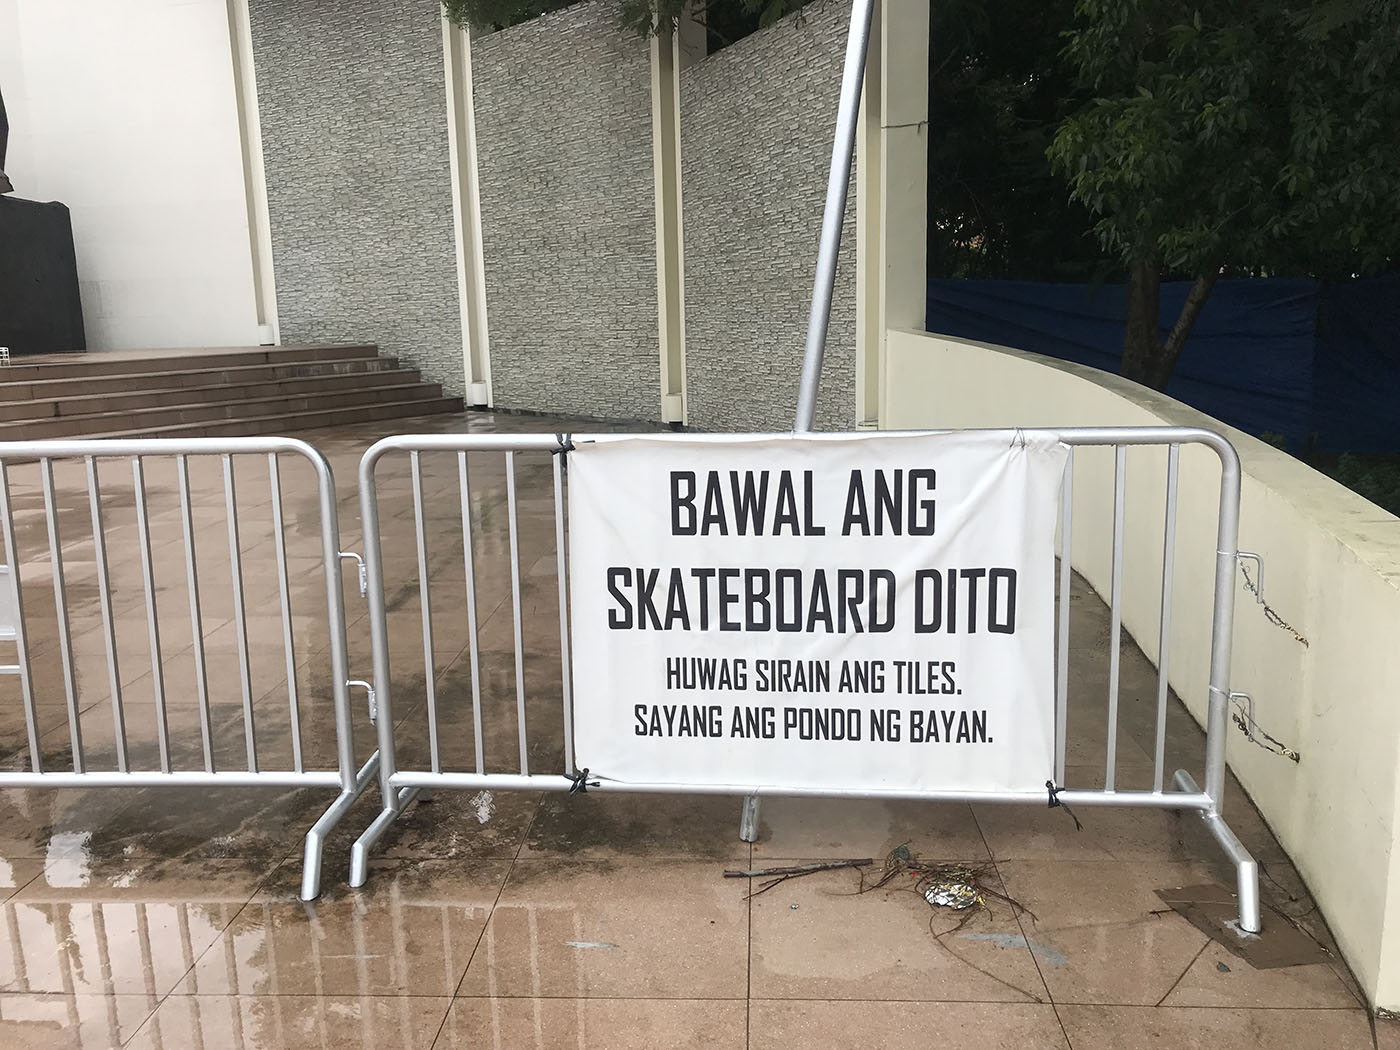 Most days, the NHCP puts up barriers and this sign a few meters away from Castrillo's monument. They say this is to prevent vandalism and to keep people from throwing trash near the statue.